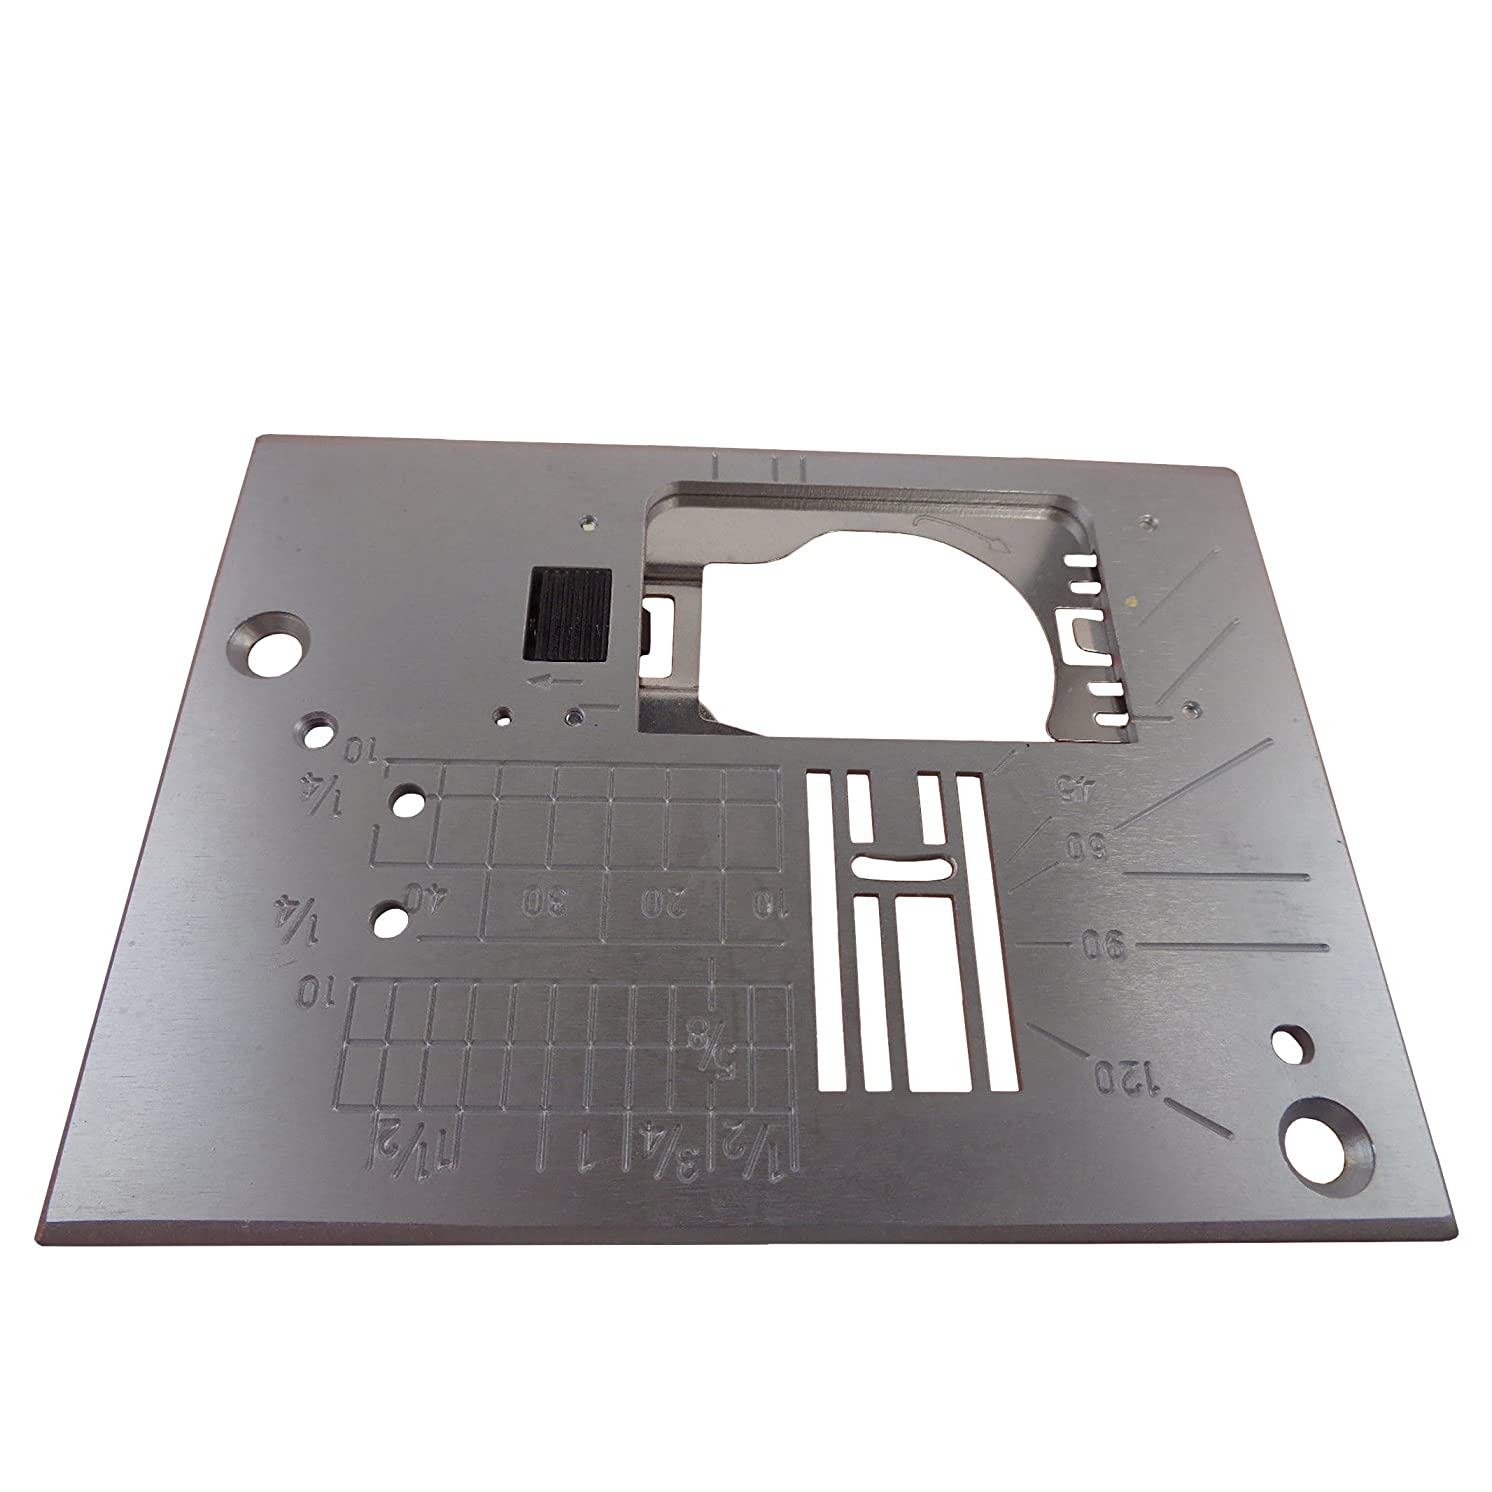 Janome Standard Needle Plate fits 11,000, 3160, 4120 and More